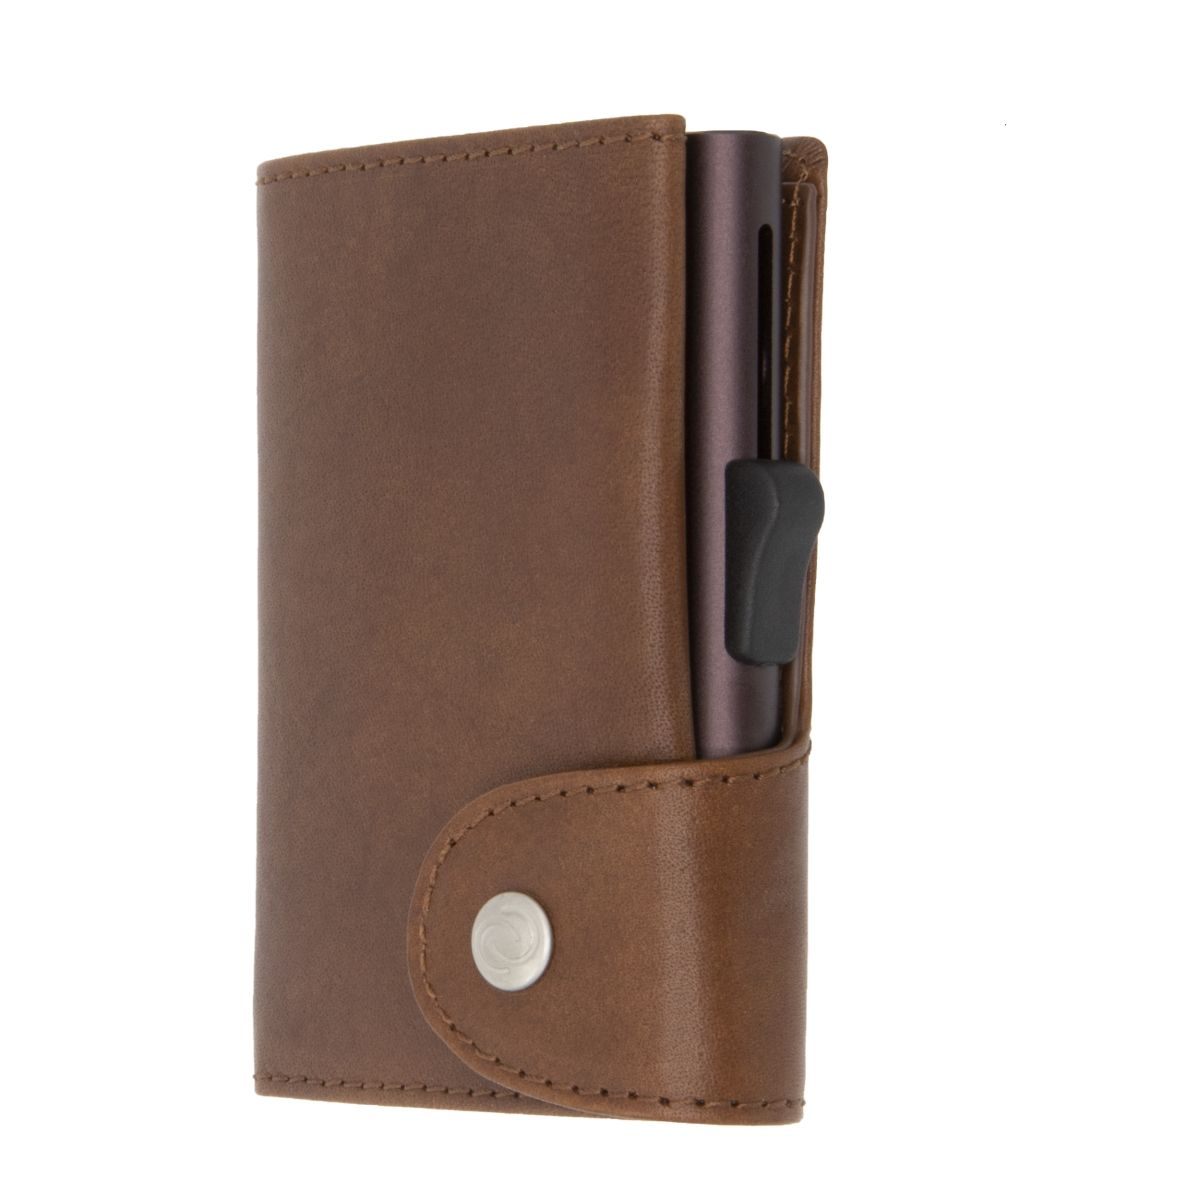 C-Secure XL Aluminum Wallet with Vegetable Genuine Leather - Brown